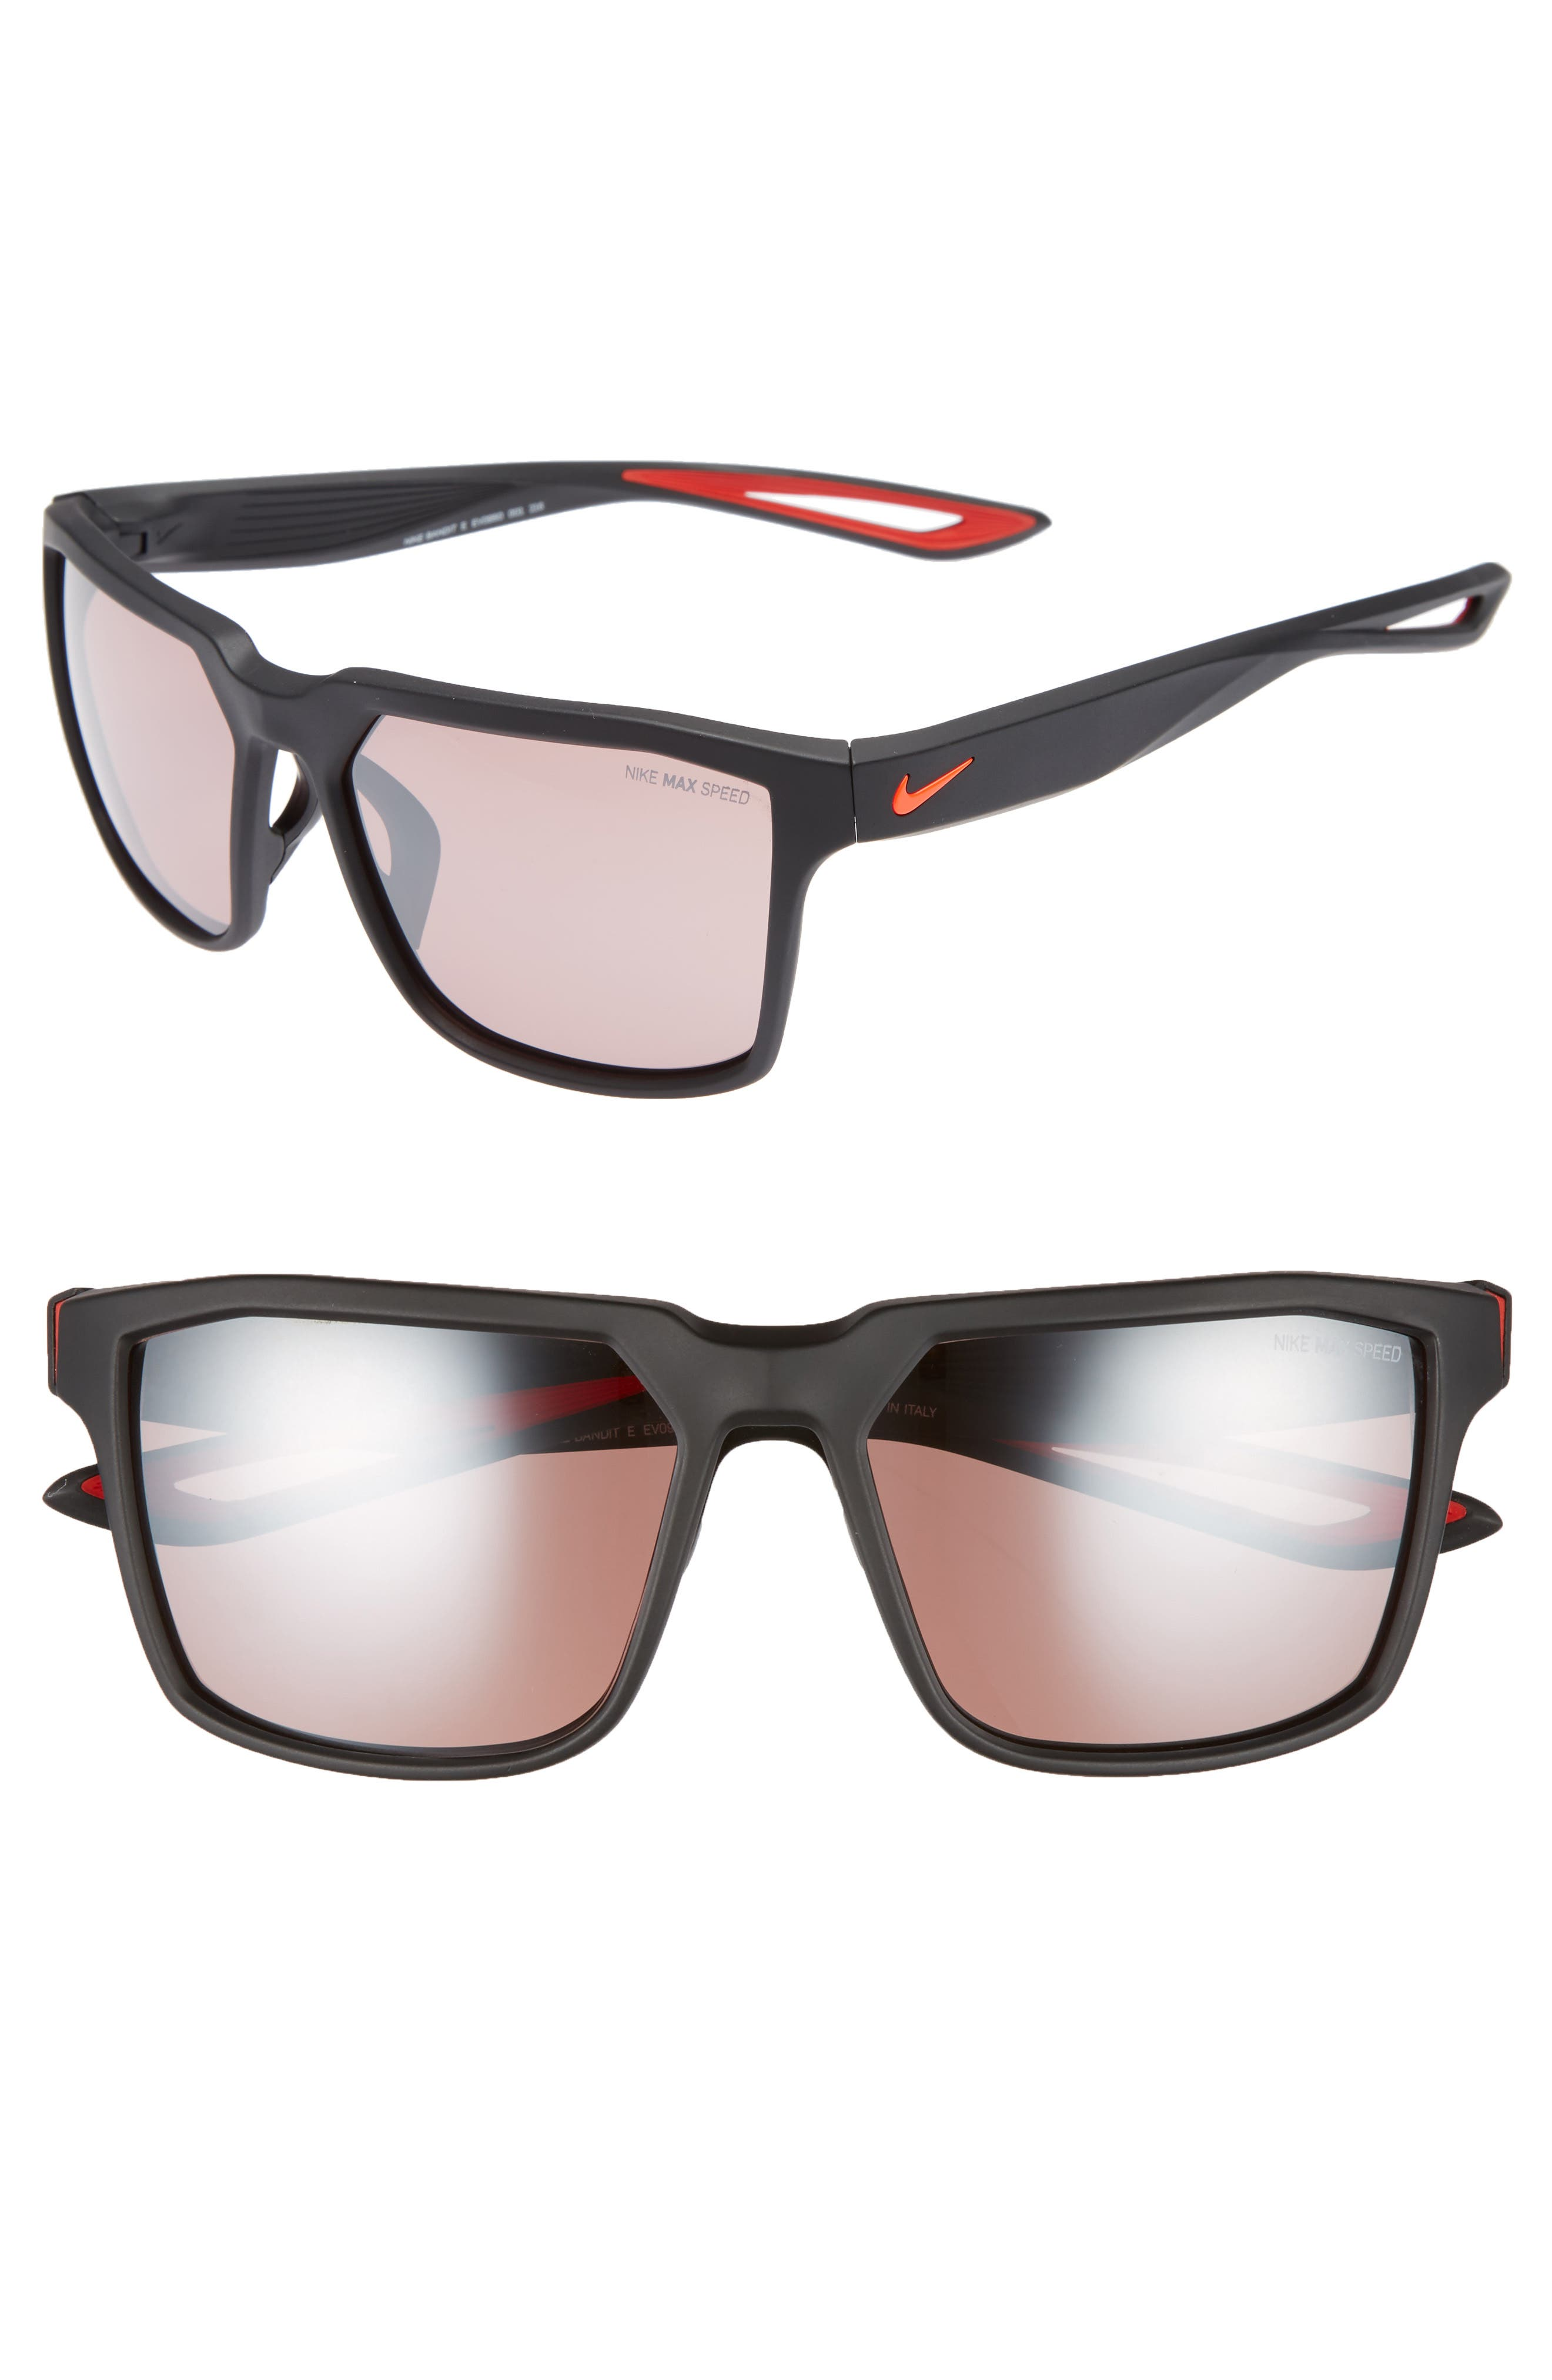 Bandit E 59mm Running Sunglasses,                             Main thumbnail 1, color,                             Matte Black/ Bright Crimson